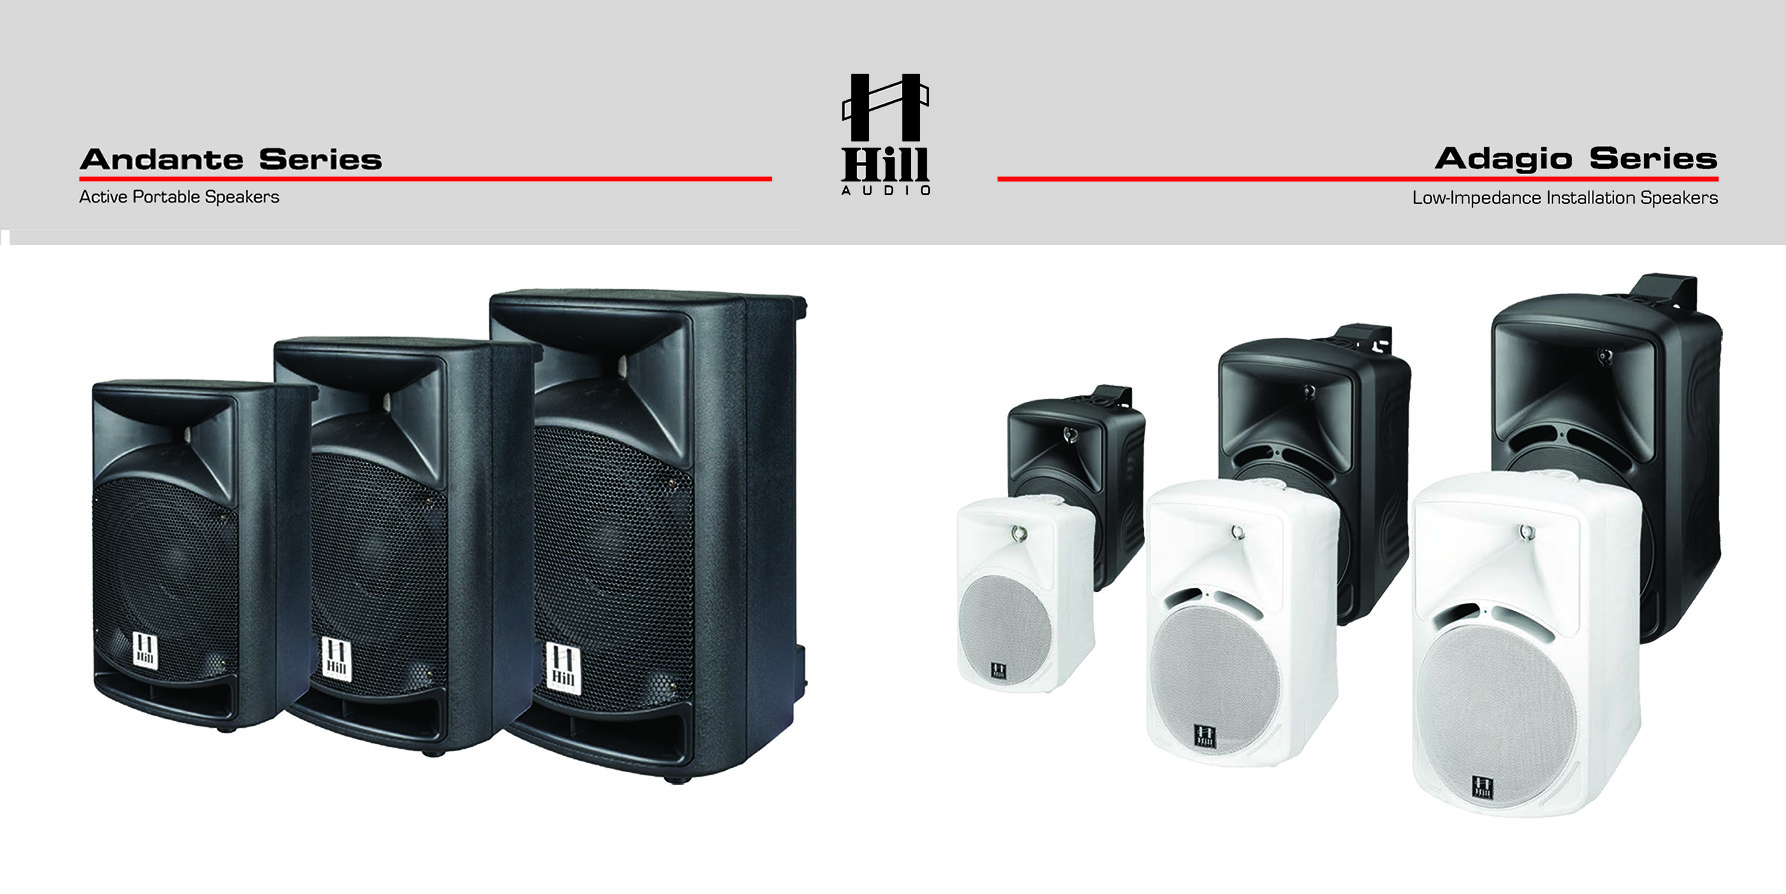 range of loudspeakers with pristine sound and superb dynamics for both foreground and background music applications.